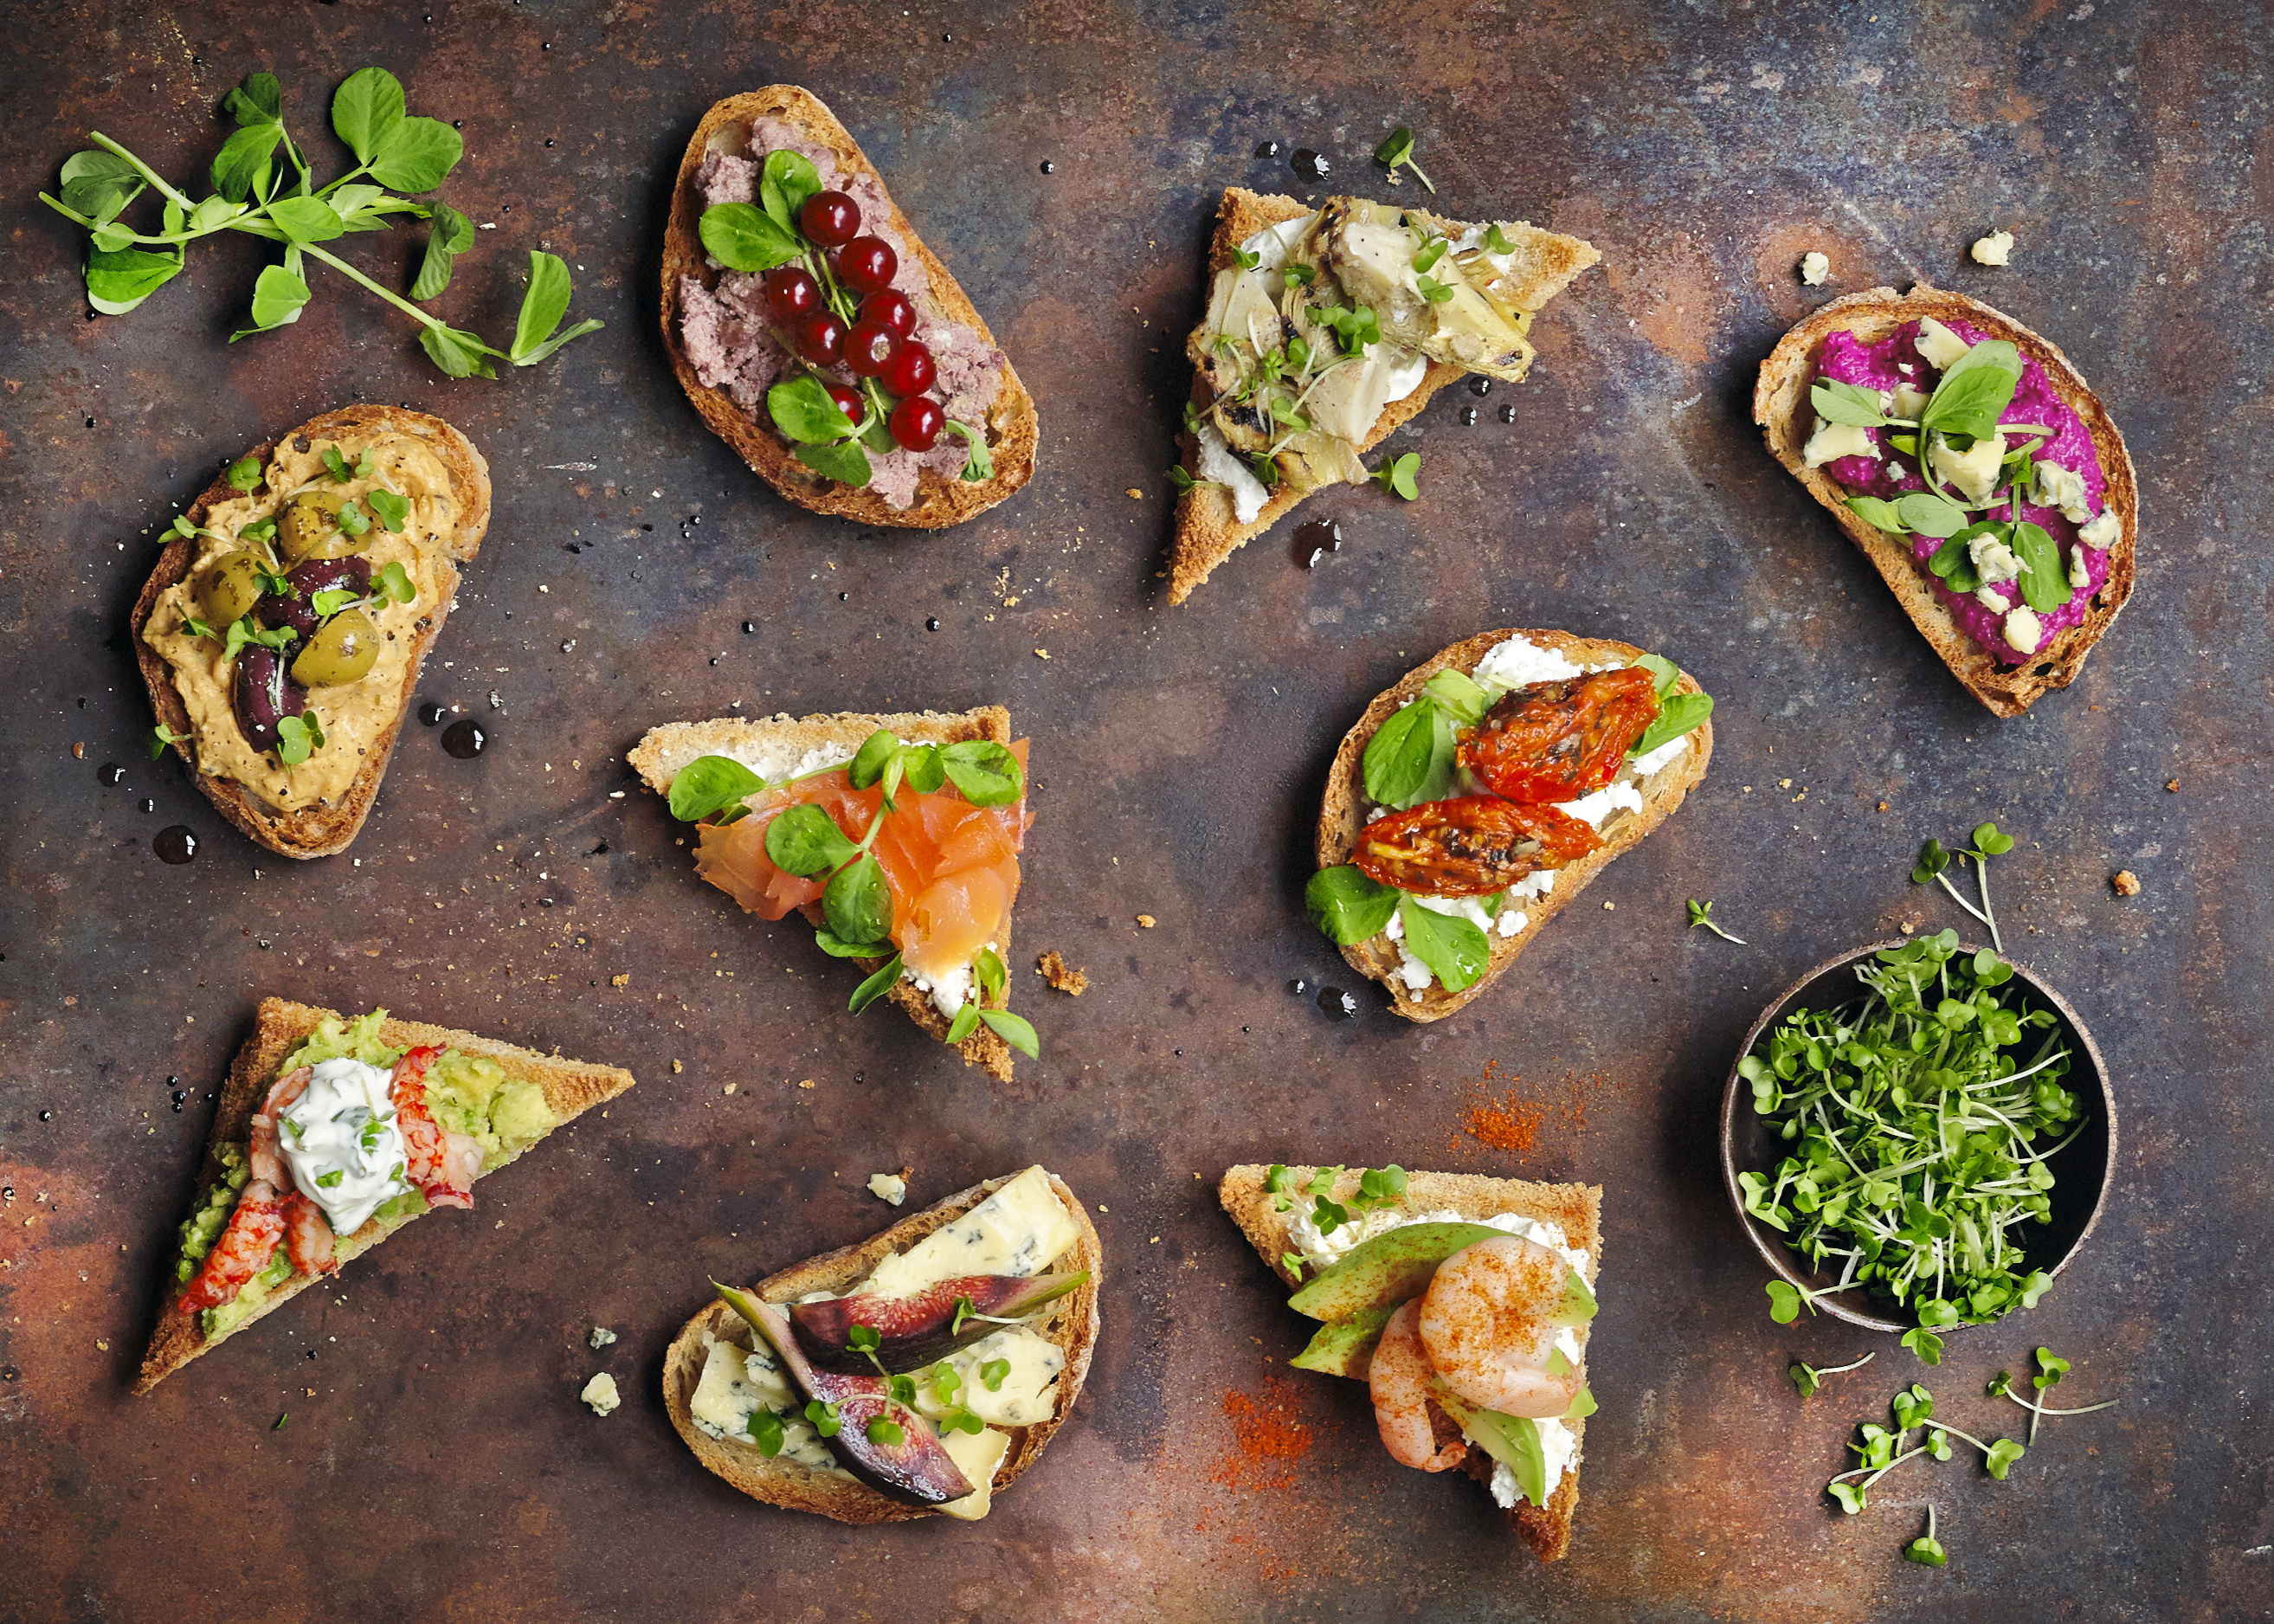 Party nibbles with salad cress and pea shoots